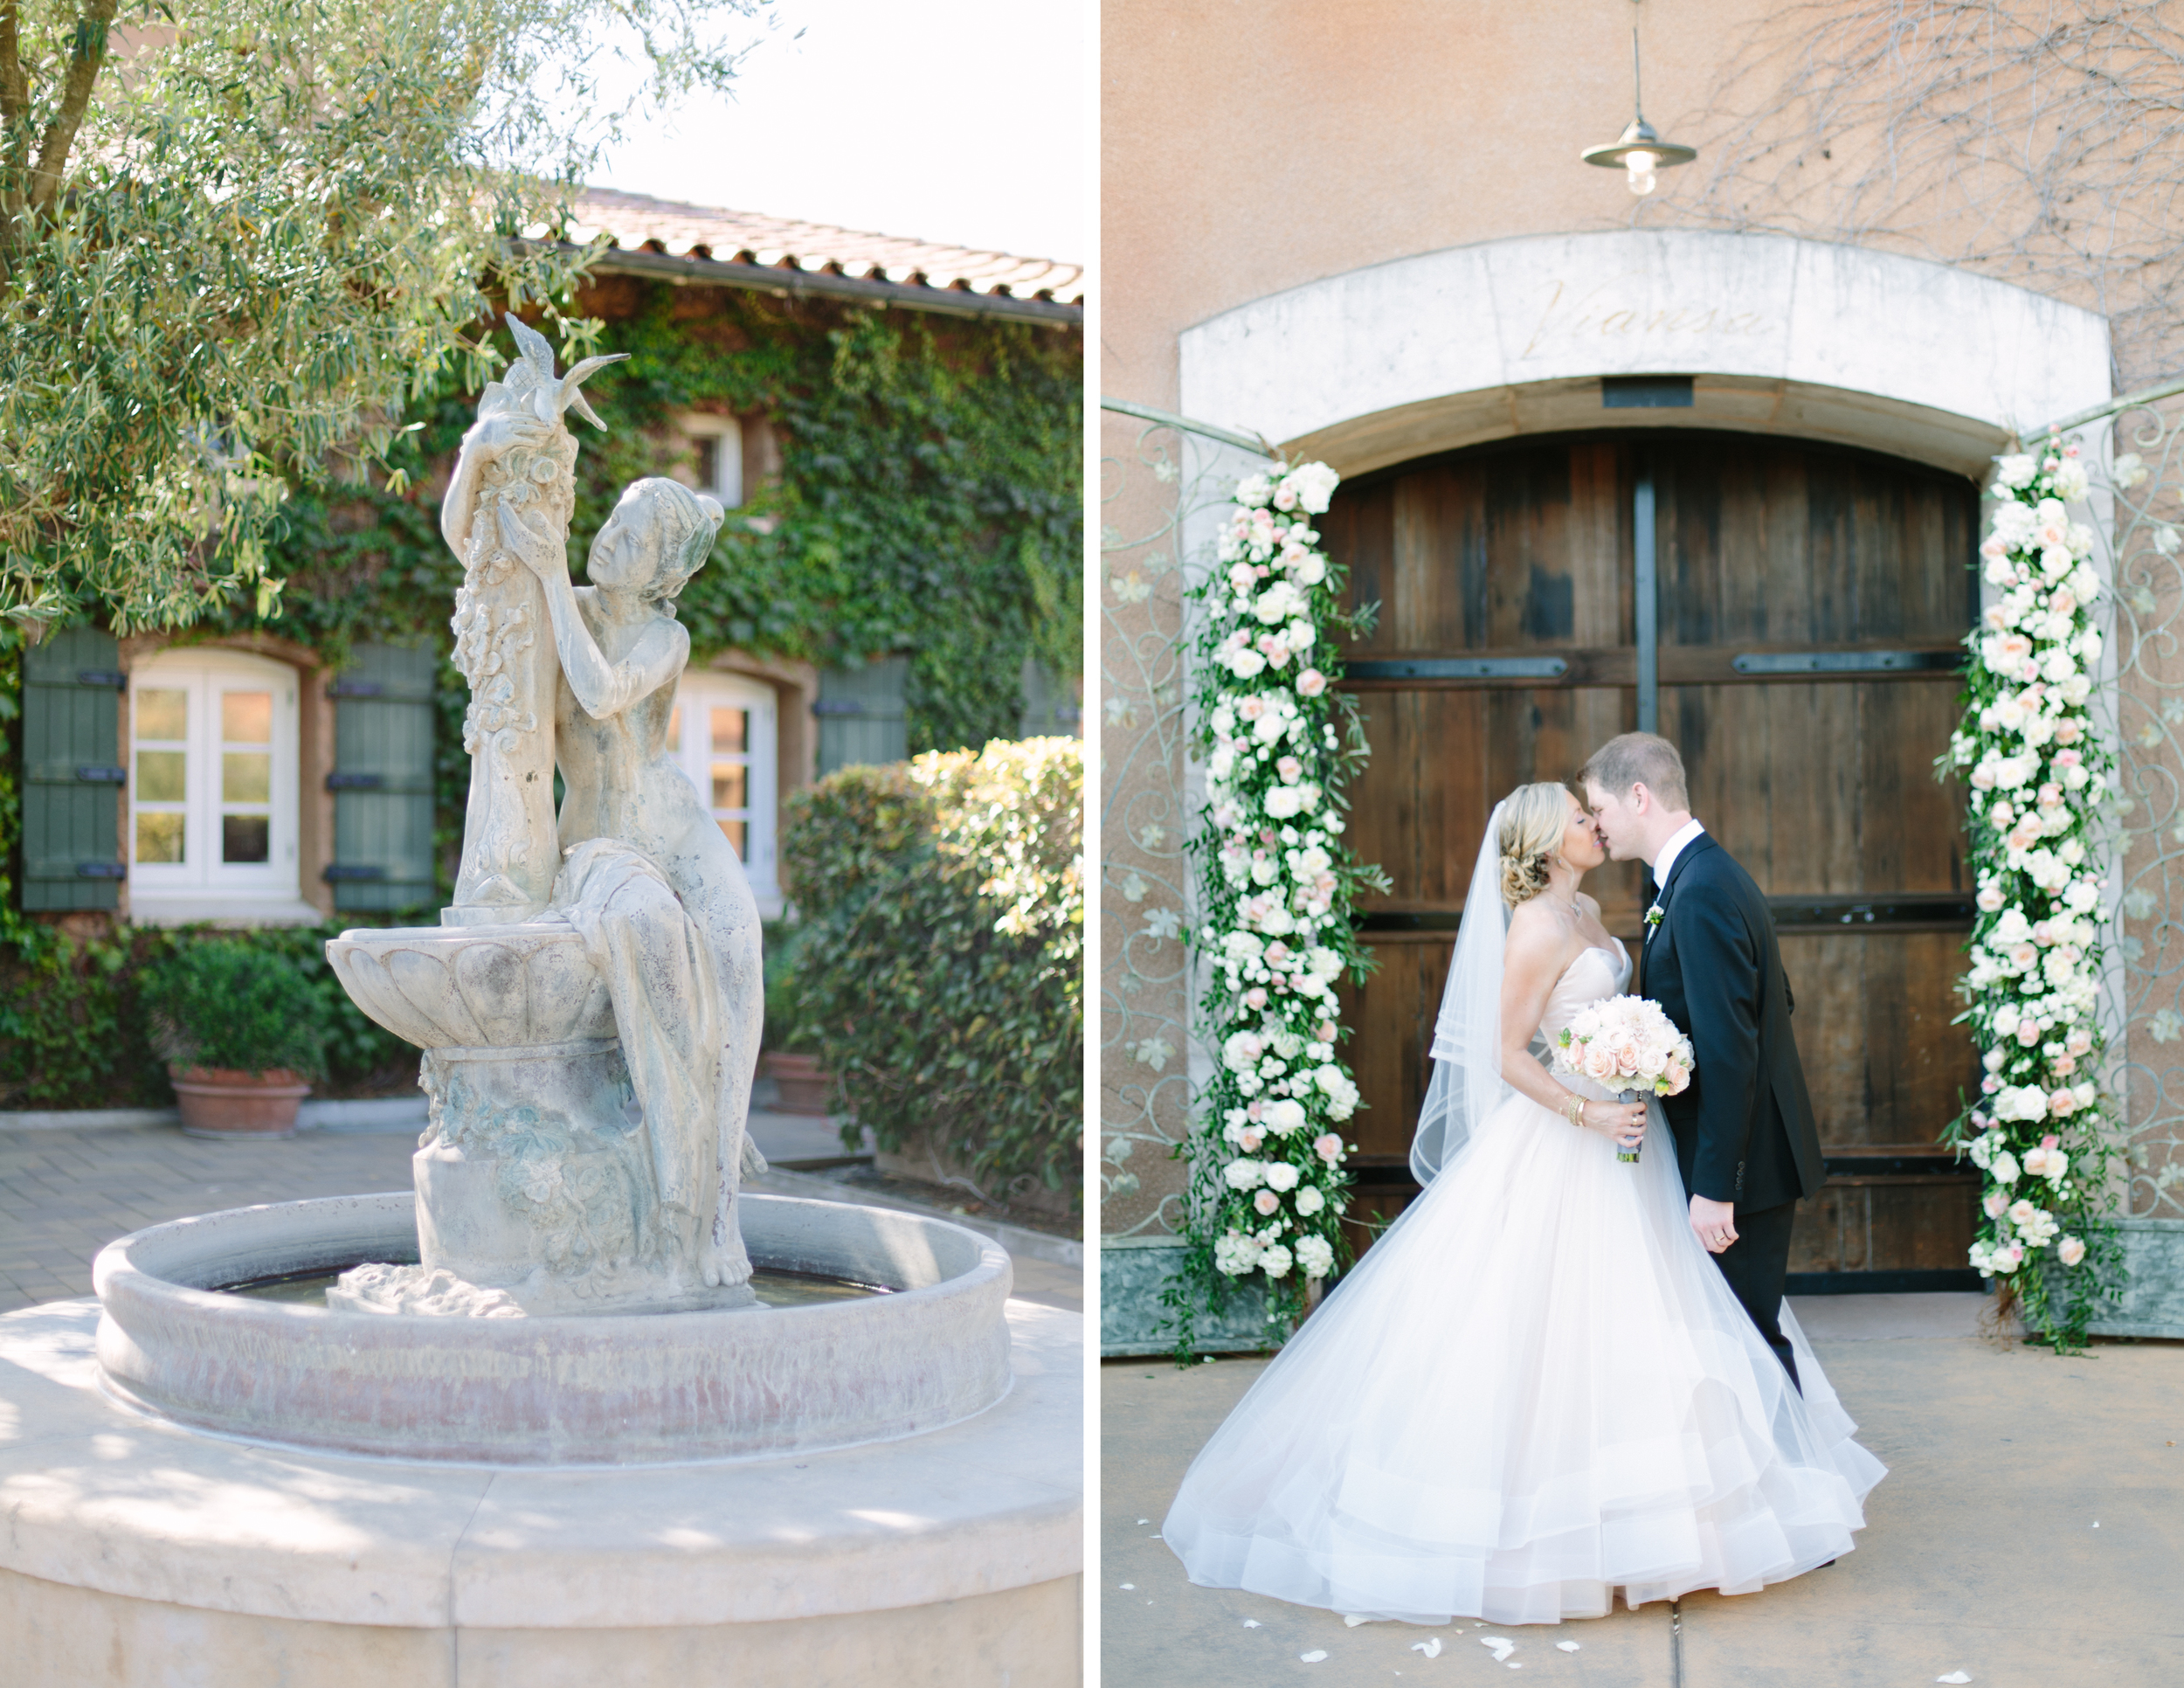 viansa winery wedding 4.jpg